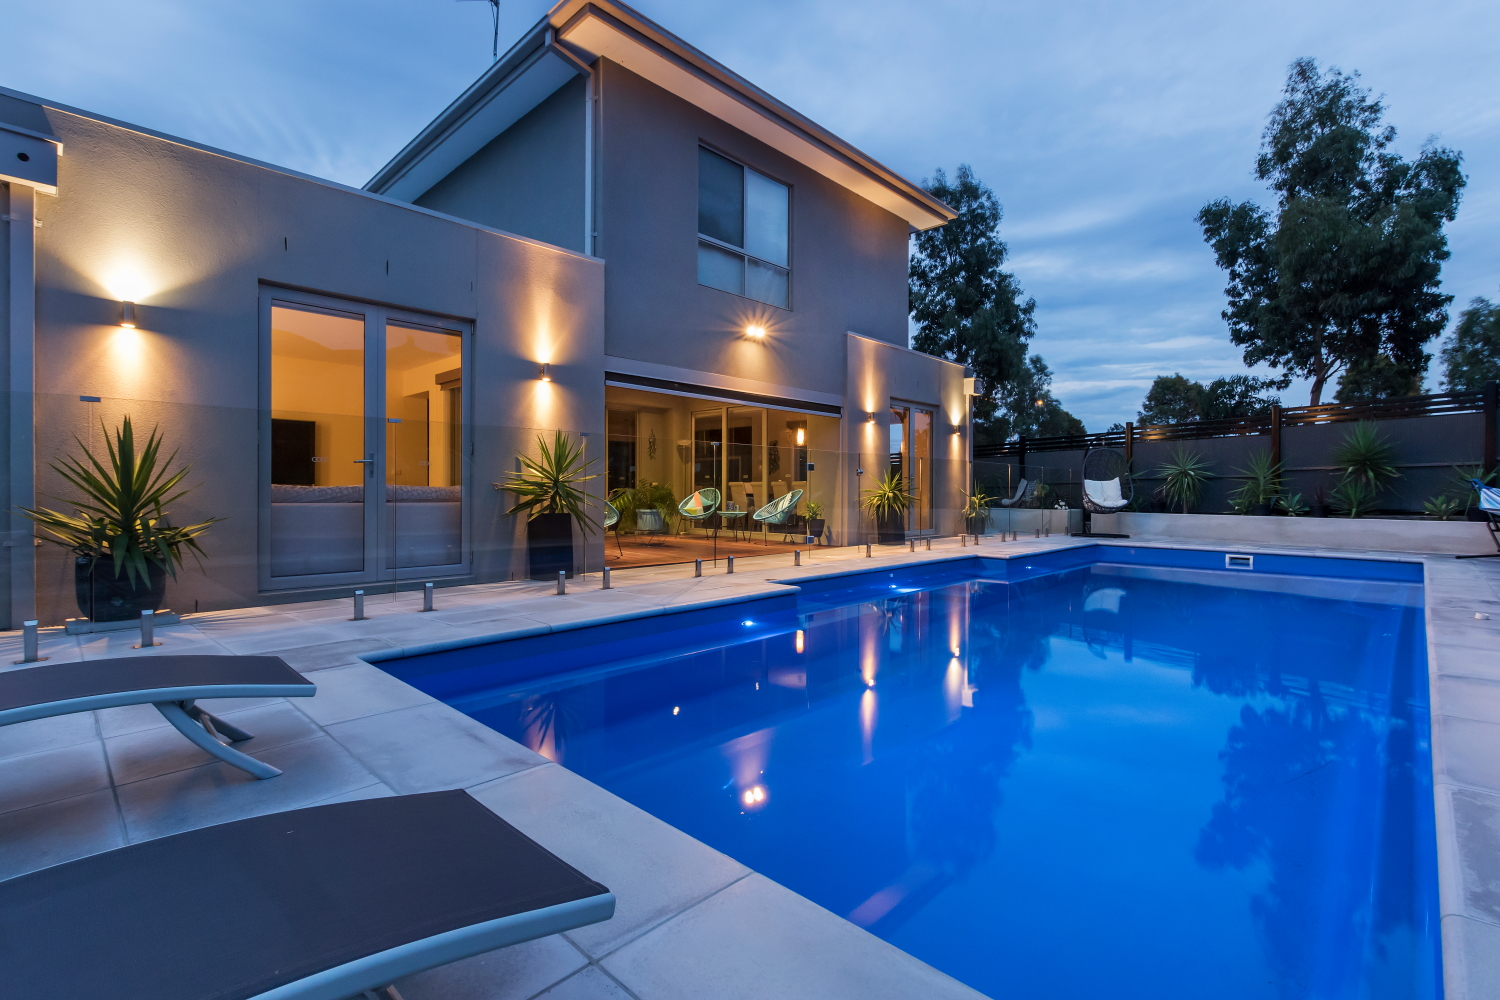 Pool Safety Barriers Fibreglass Pools Sales And Installation Rainwise Pools Melbourne